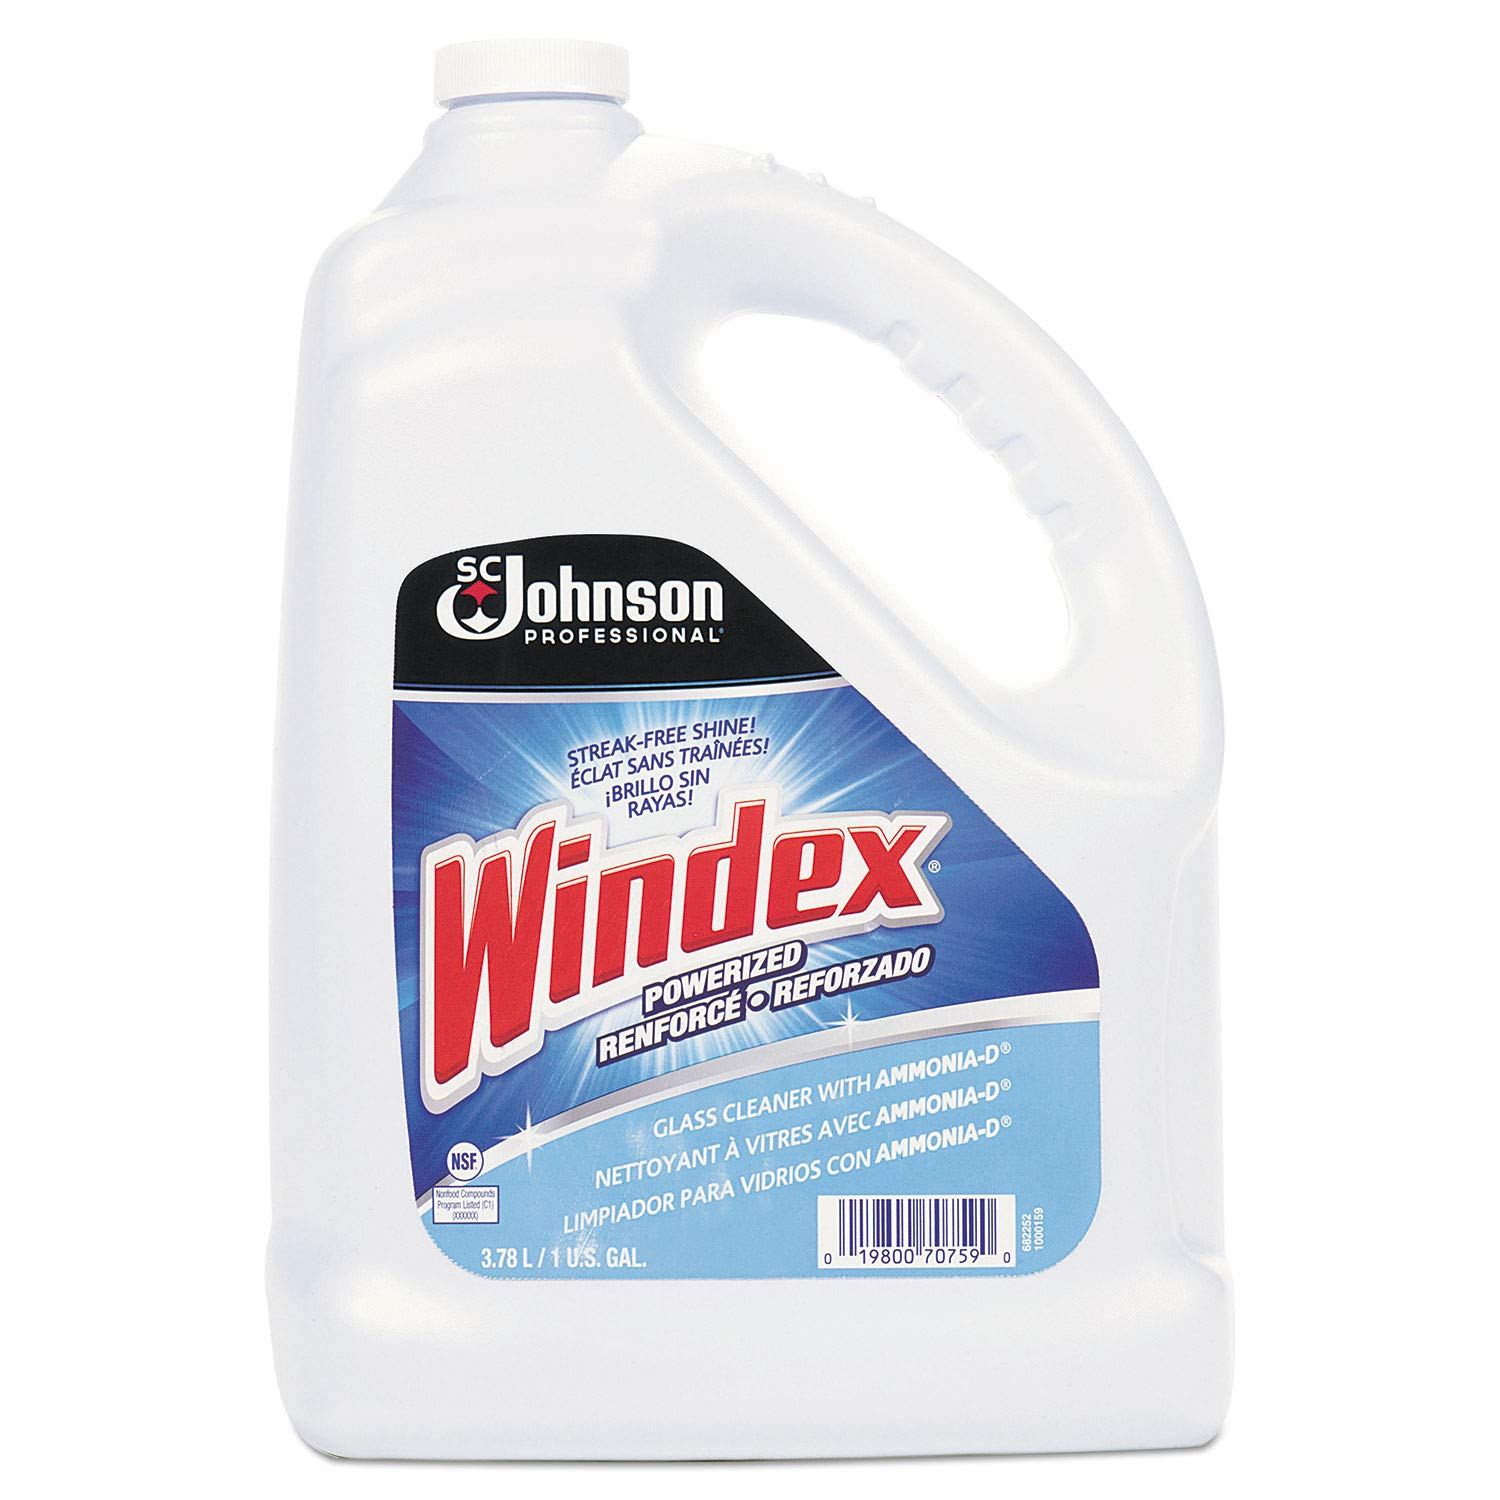 Windex Glass Cleaner 1 Gallon, Pack of 4